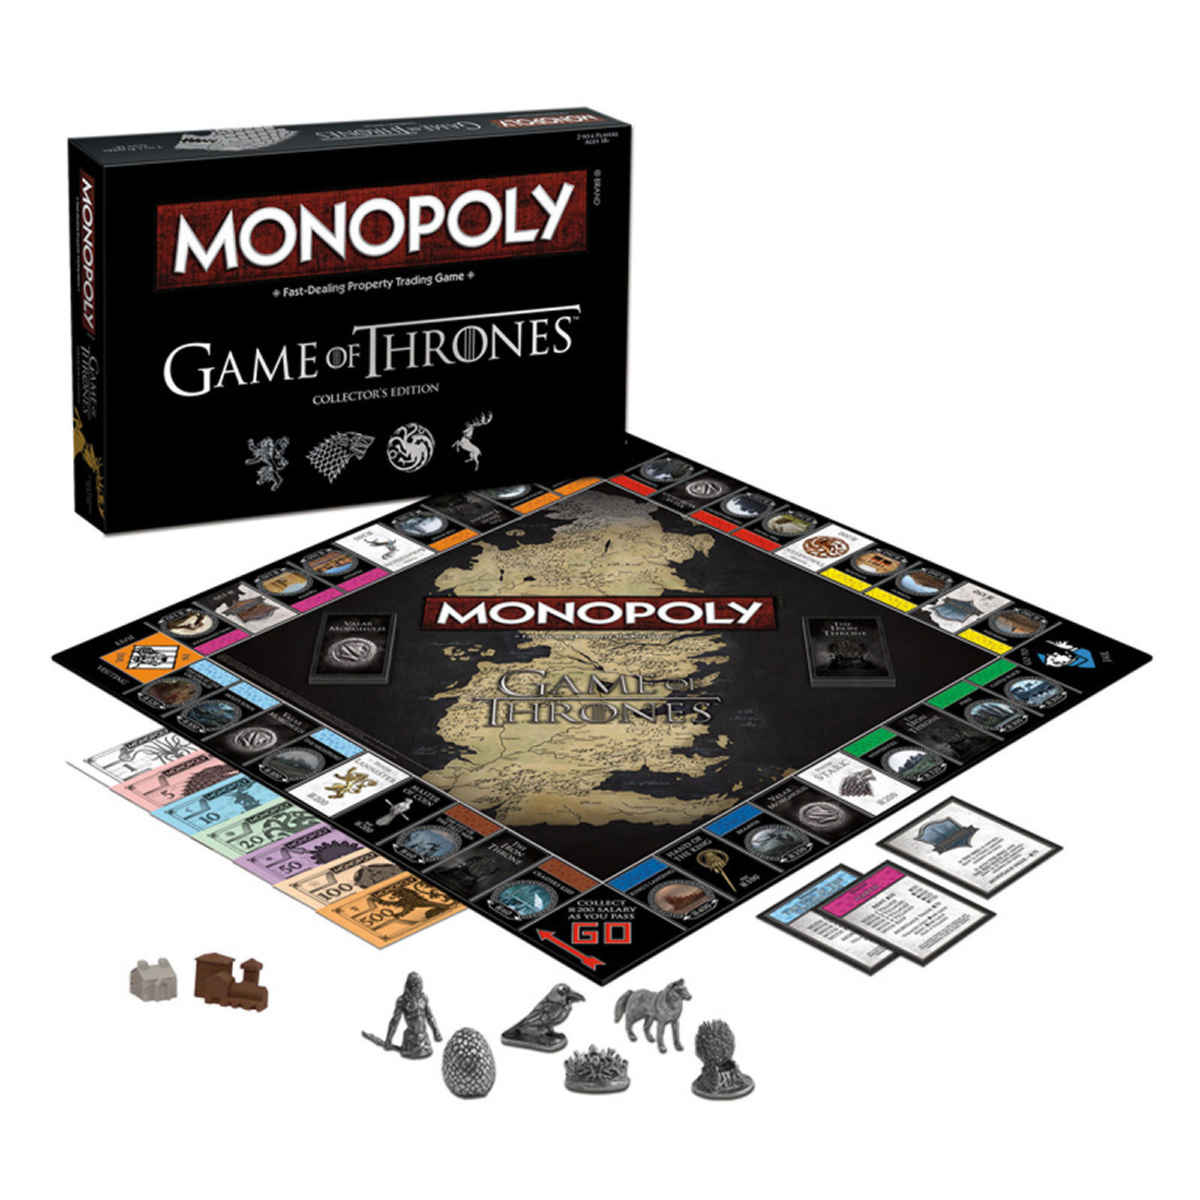 Monopoly a tema Game of Thrones sviluppato da USAopoly